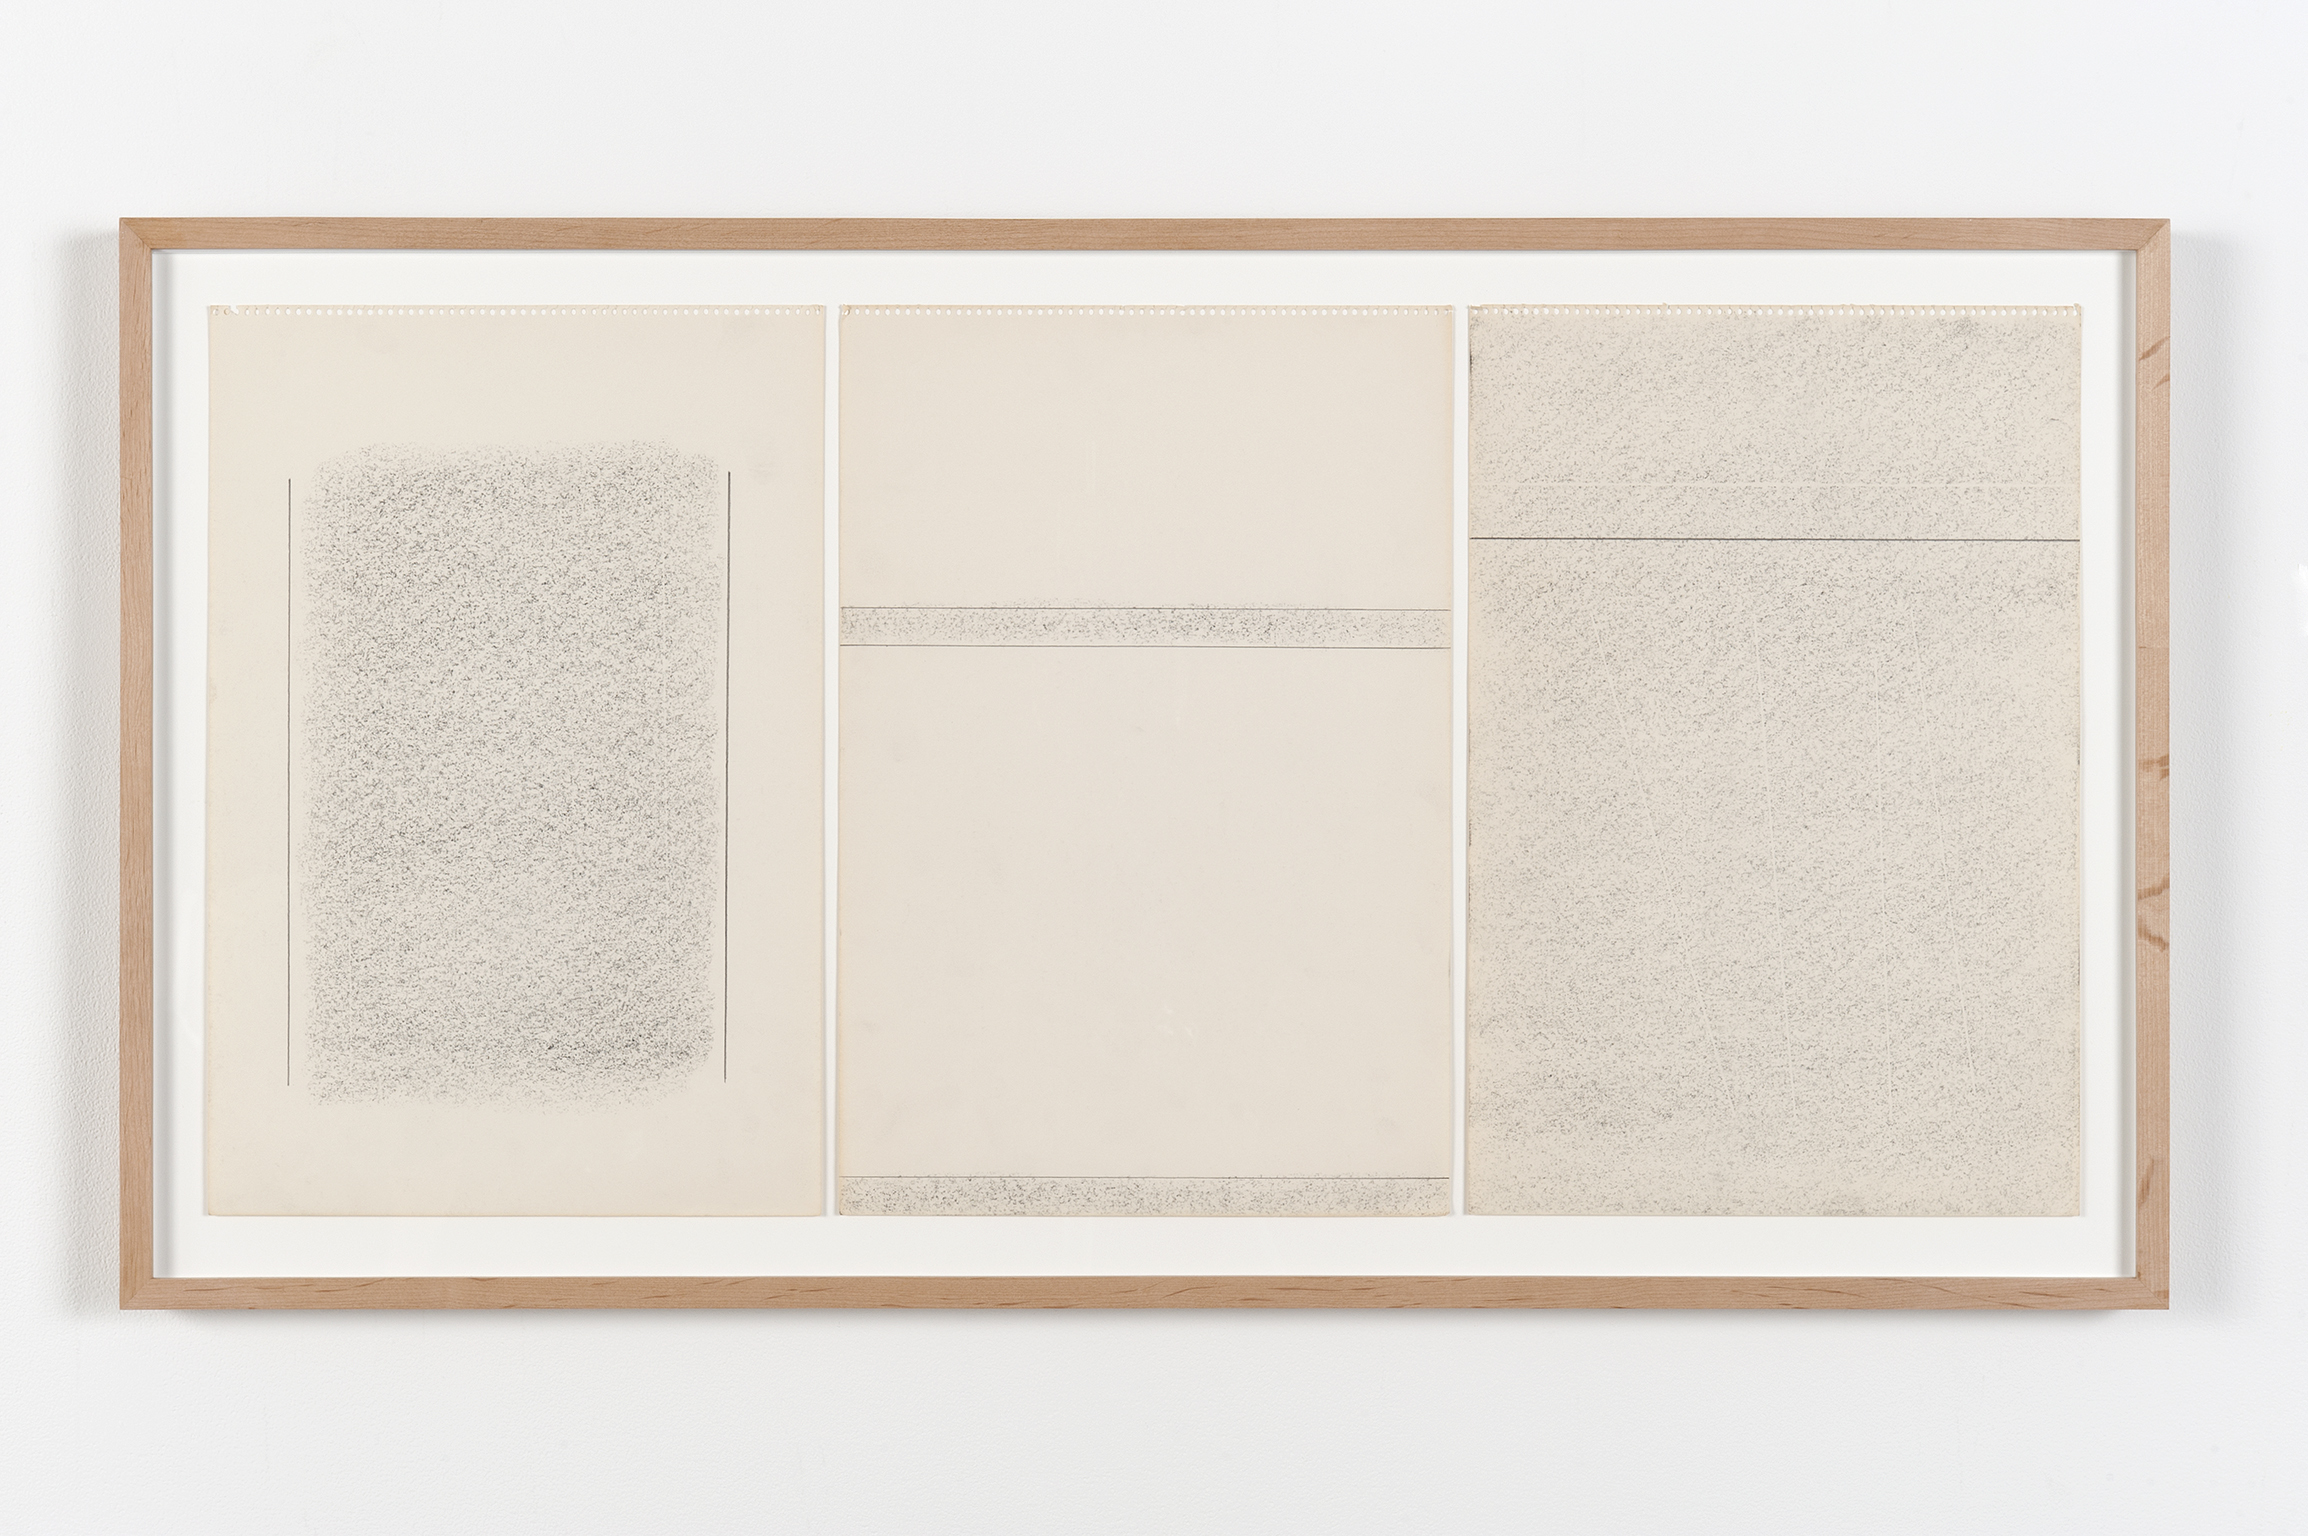 Robert Kleyn, Untitled, 1969–1970, graphite on paper, 22 x 40 in. (55 x 102 cm)  ​ by